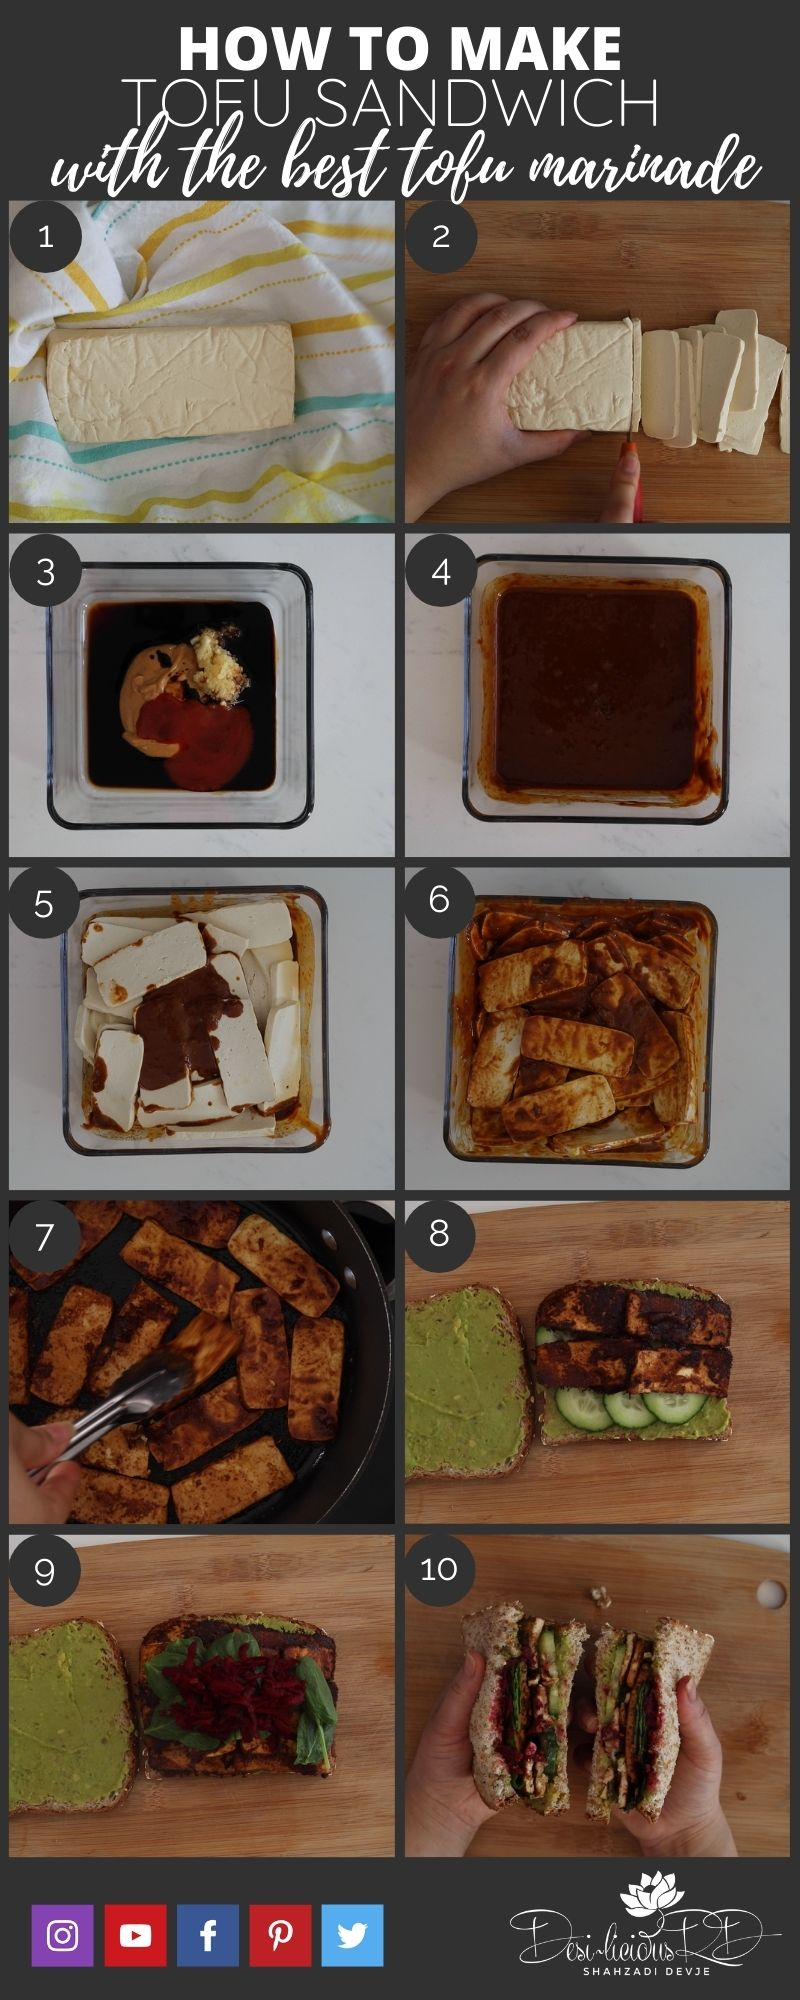 How to make a tofu sandwich with the best tofu marinade - step by step photos showing the process